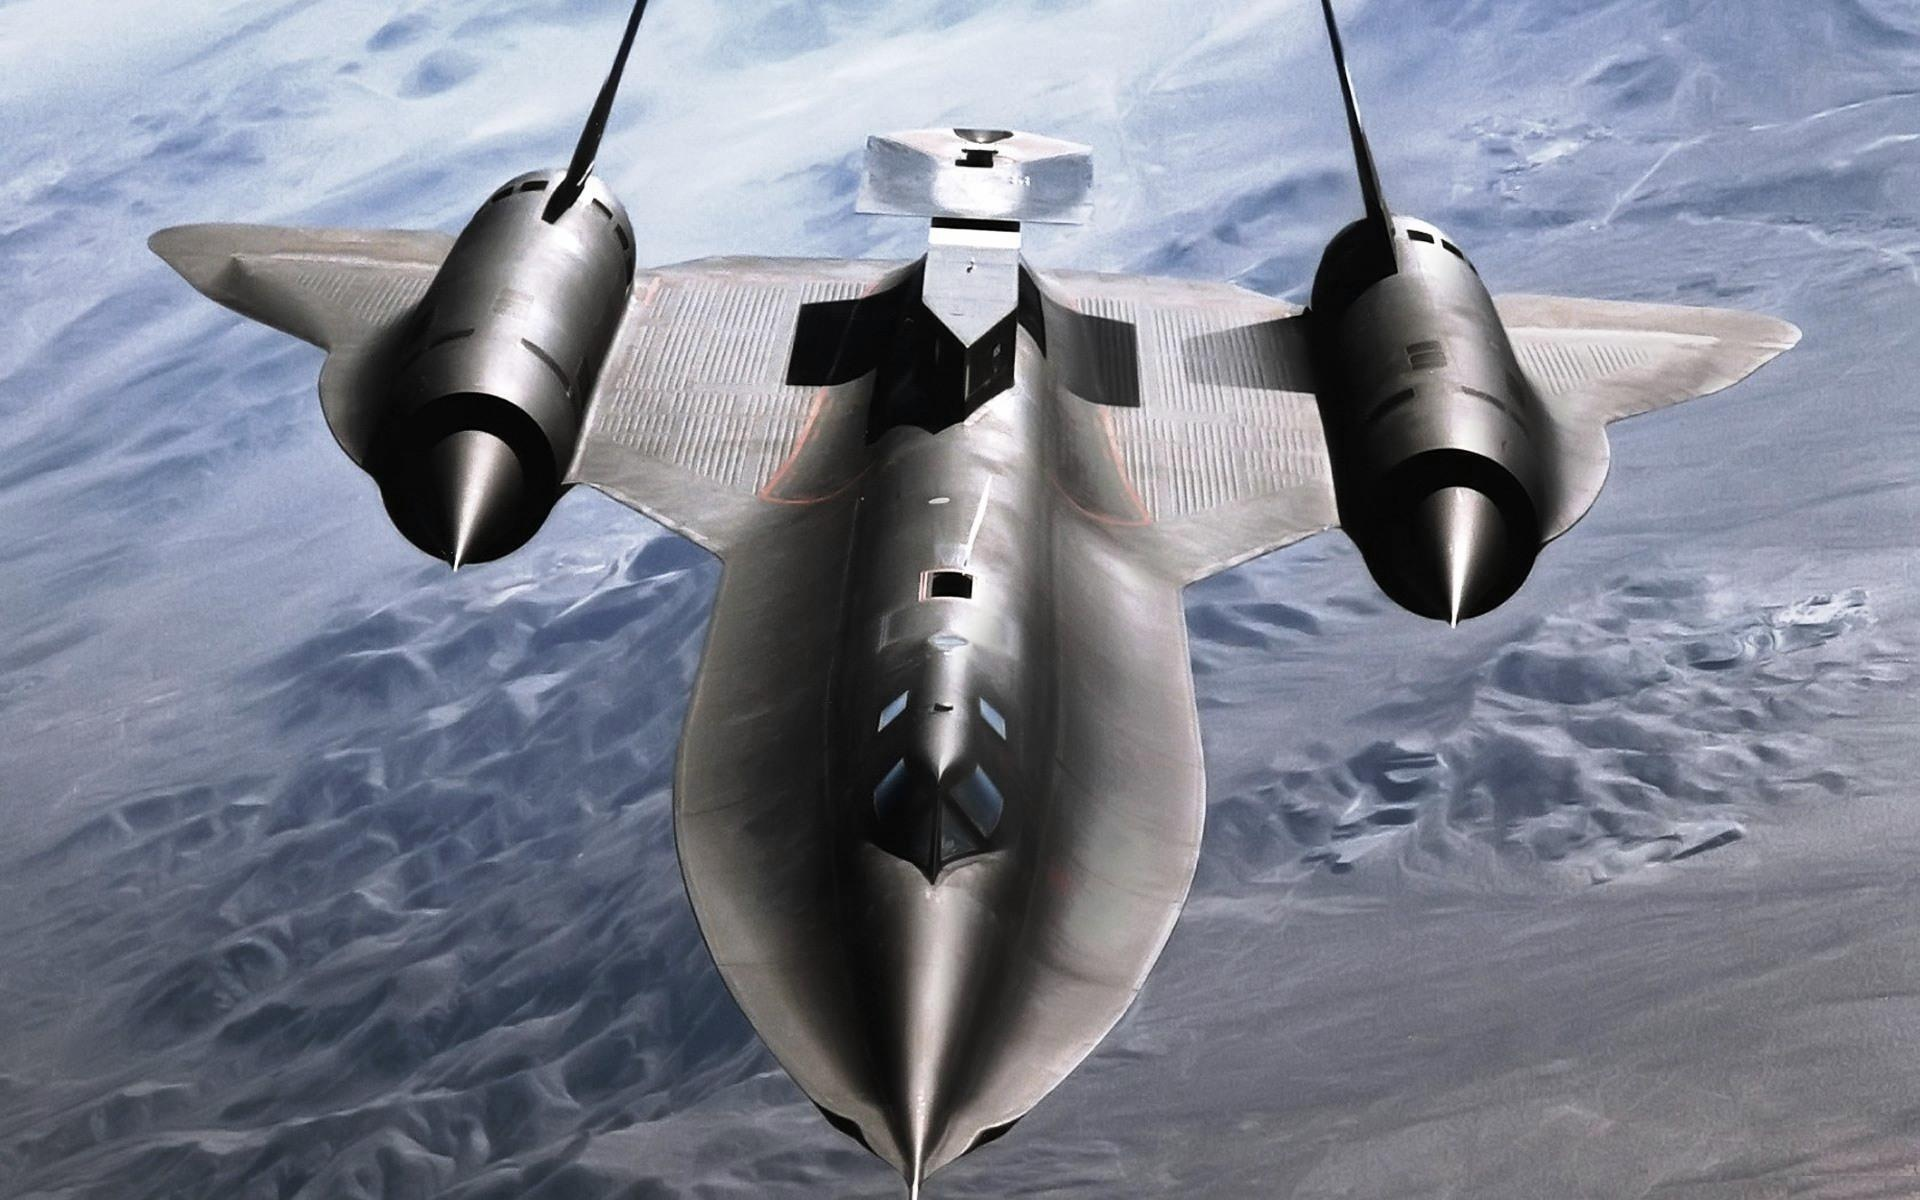 Sr 71 blackbird wallpapers 1920x1200 458136 - Sr 71 wallpaper ...